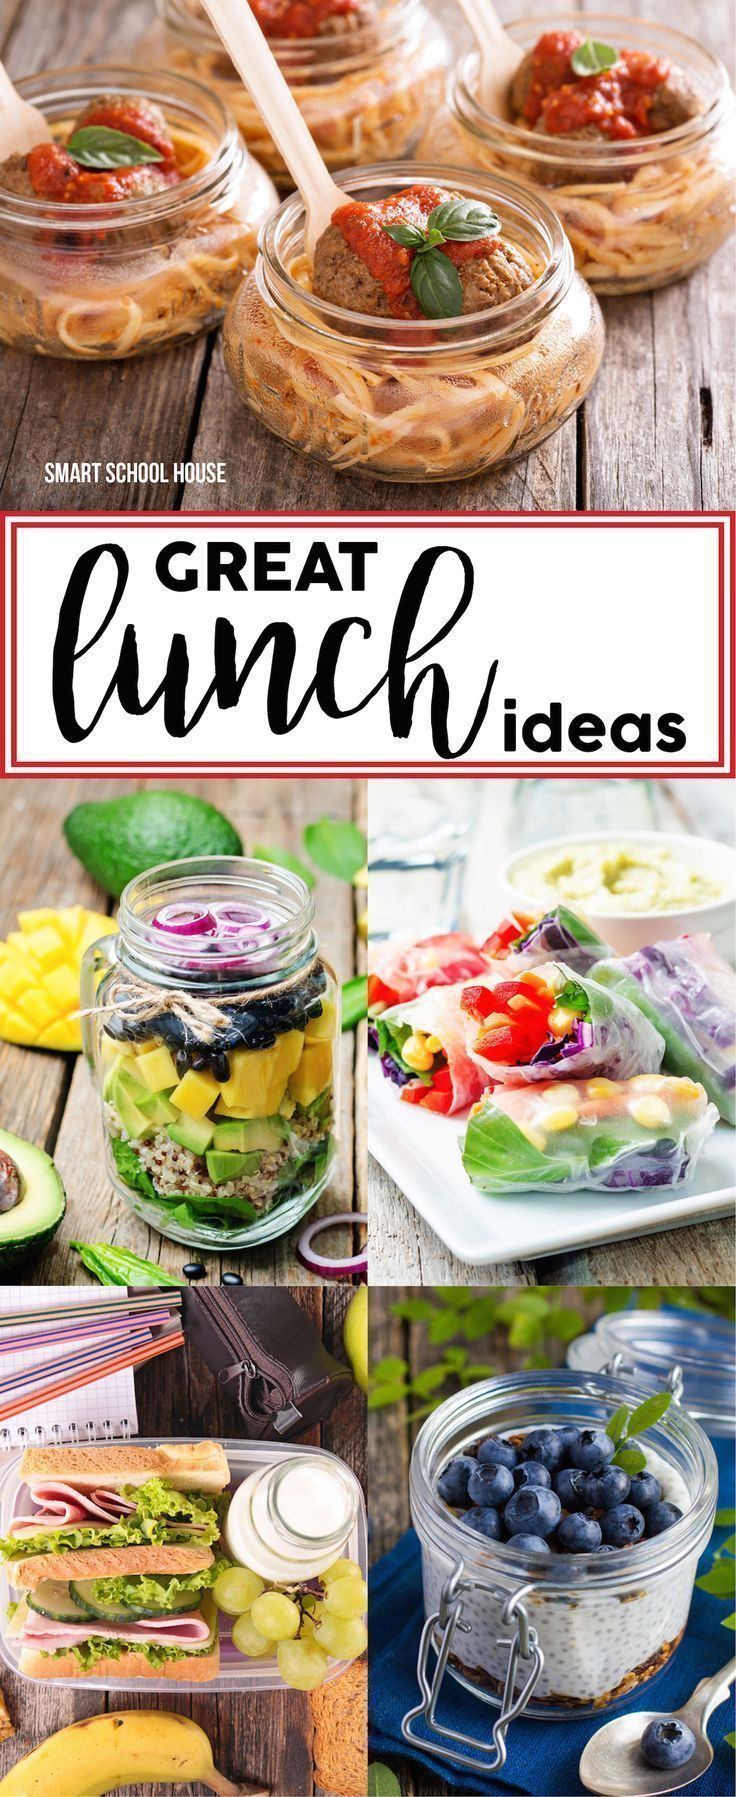 Great lunch ideas office lunch ideas lunches and easy easy healthy office lunch ideas forumfinder Images